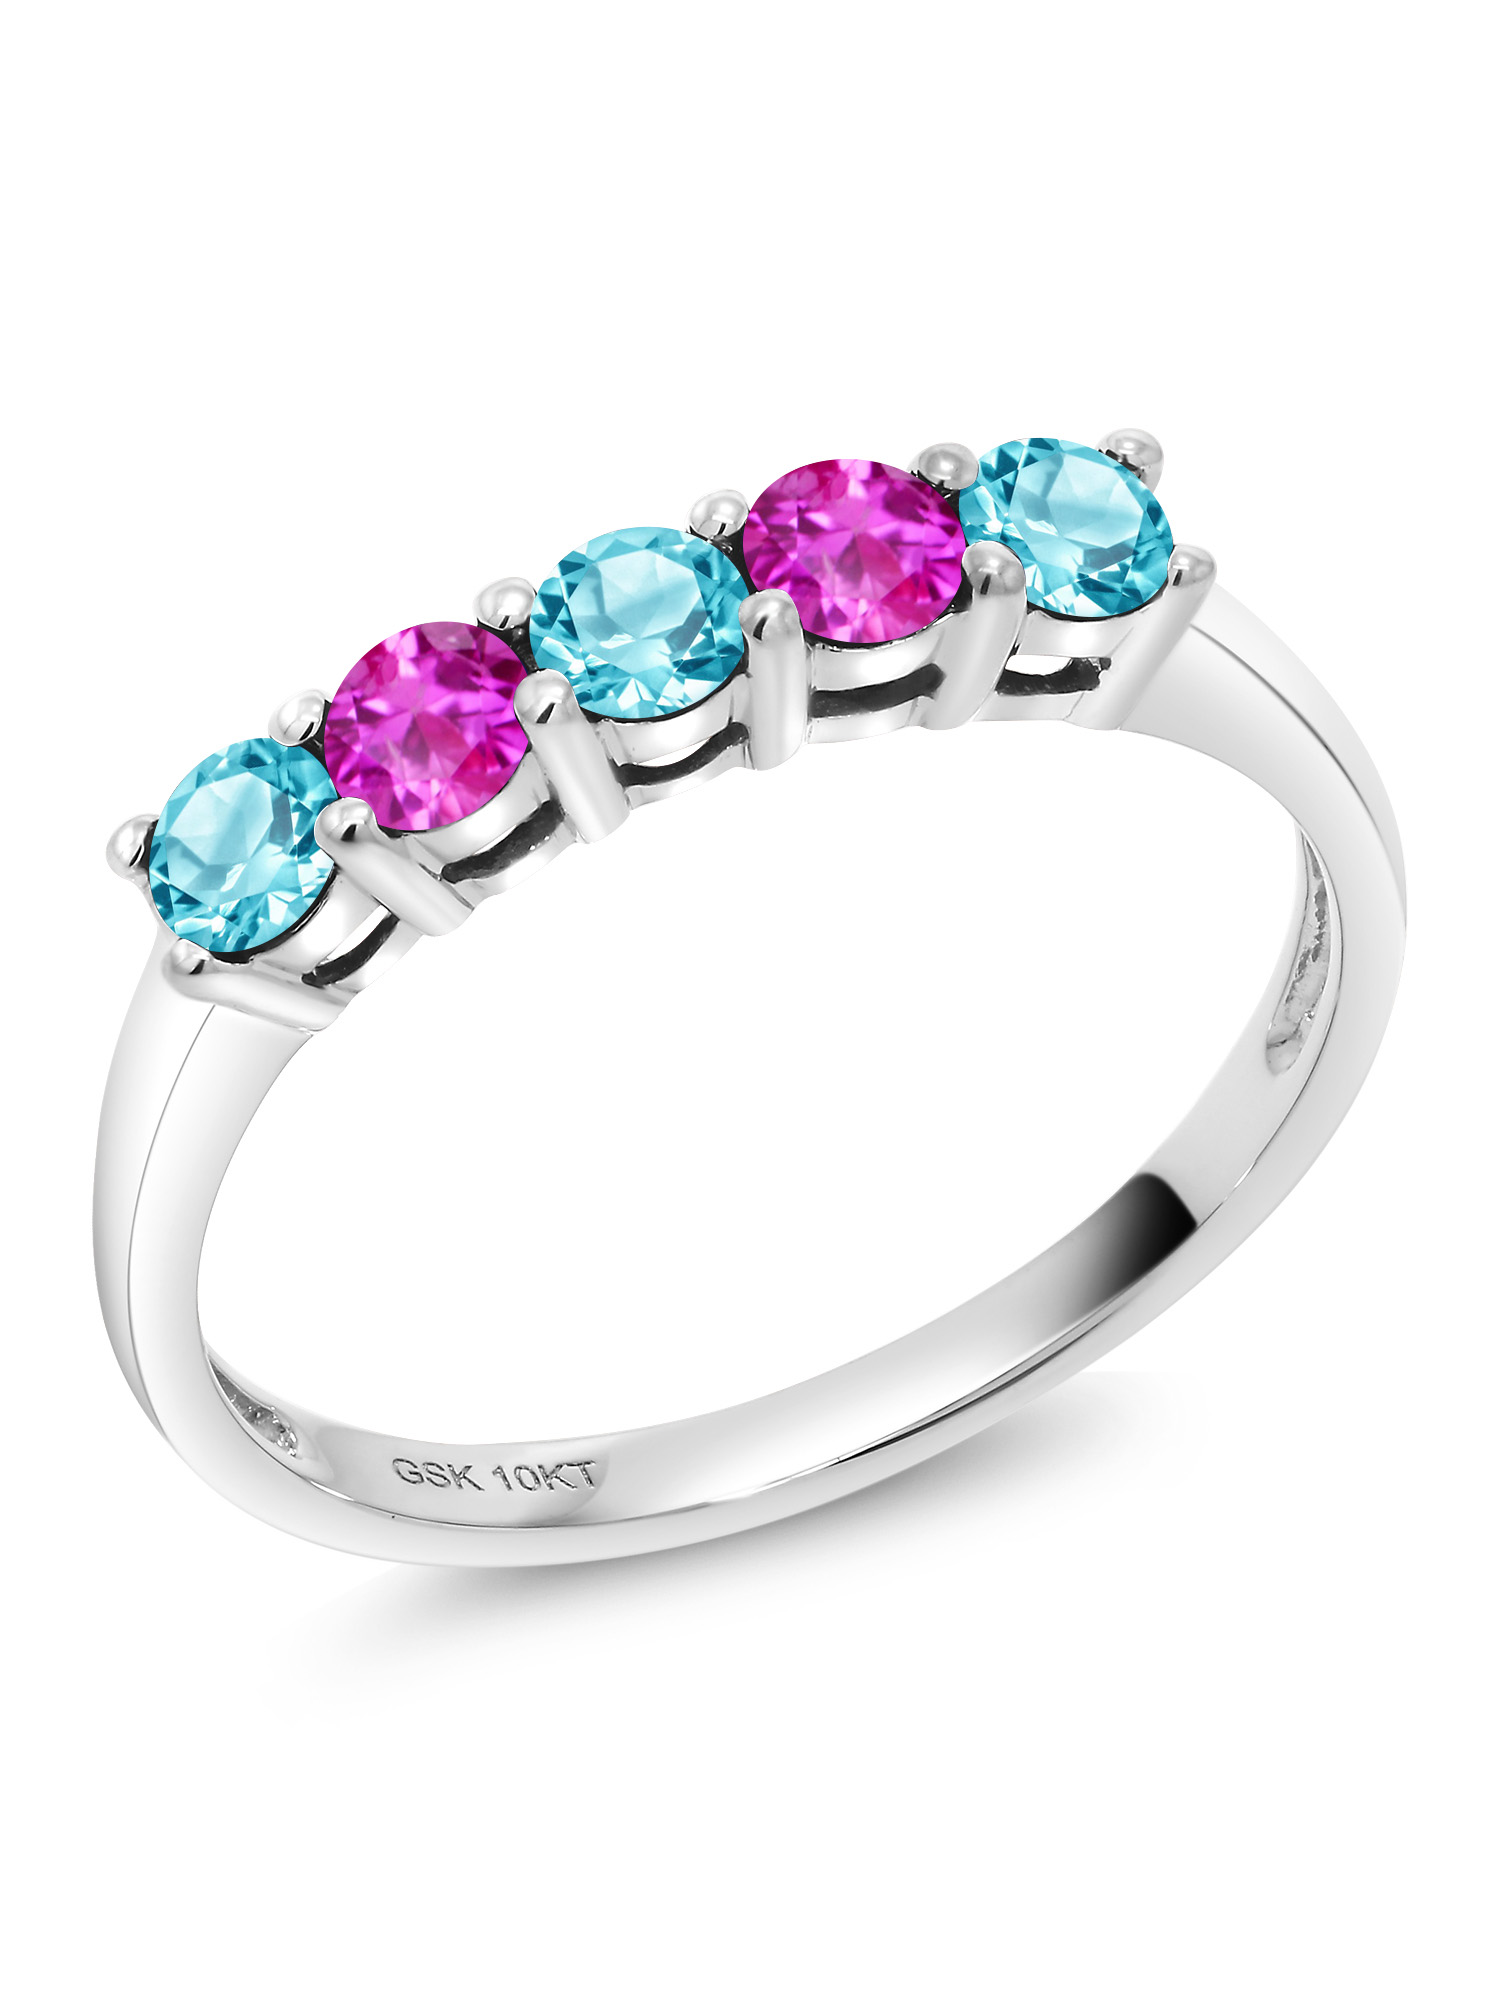 0.71 Ct Round Swiss Blue Topaz Pink Sapphire 10K White Gold Ring by